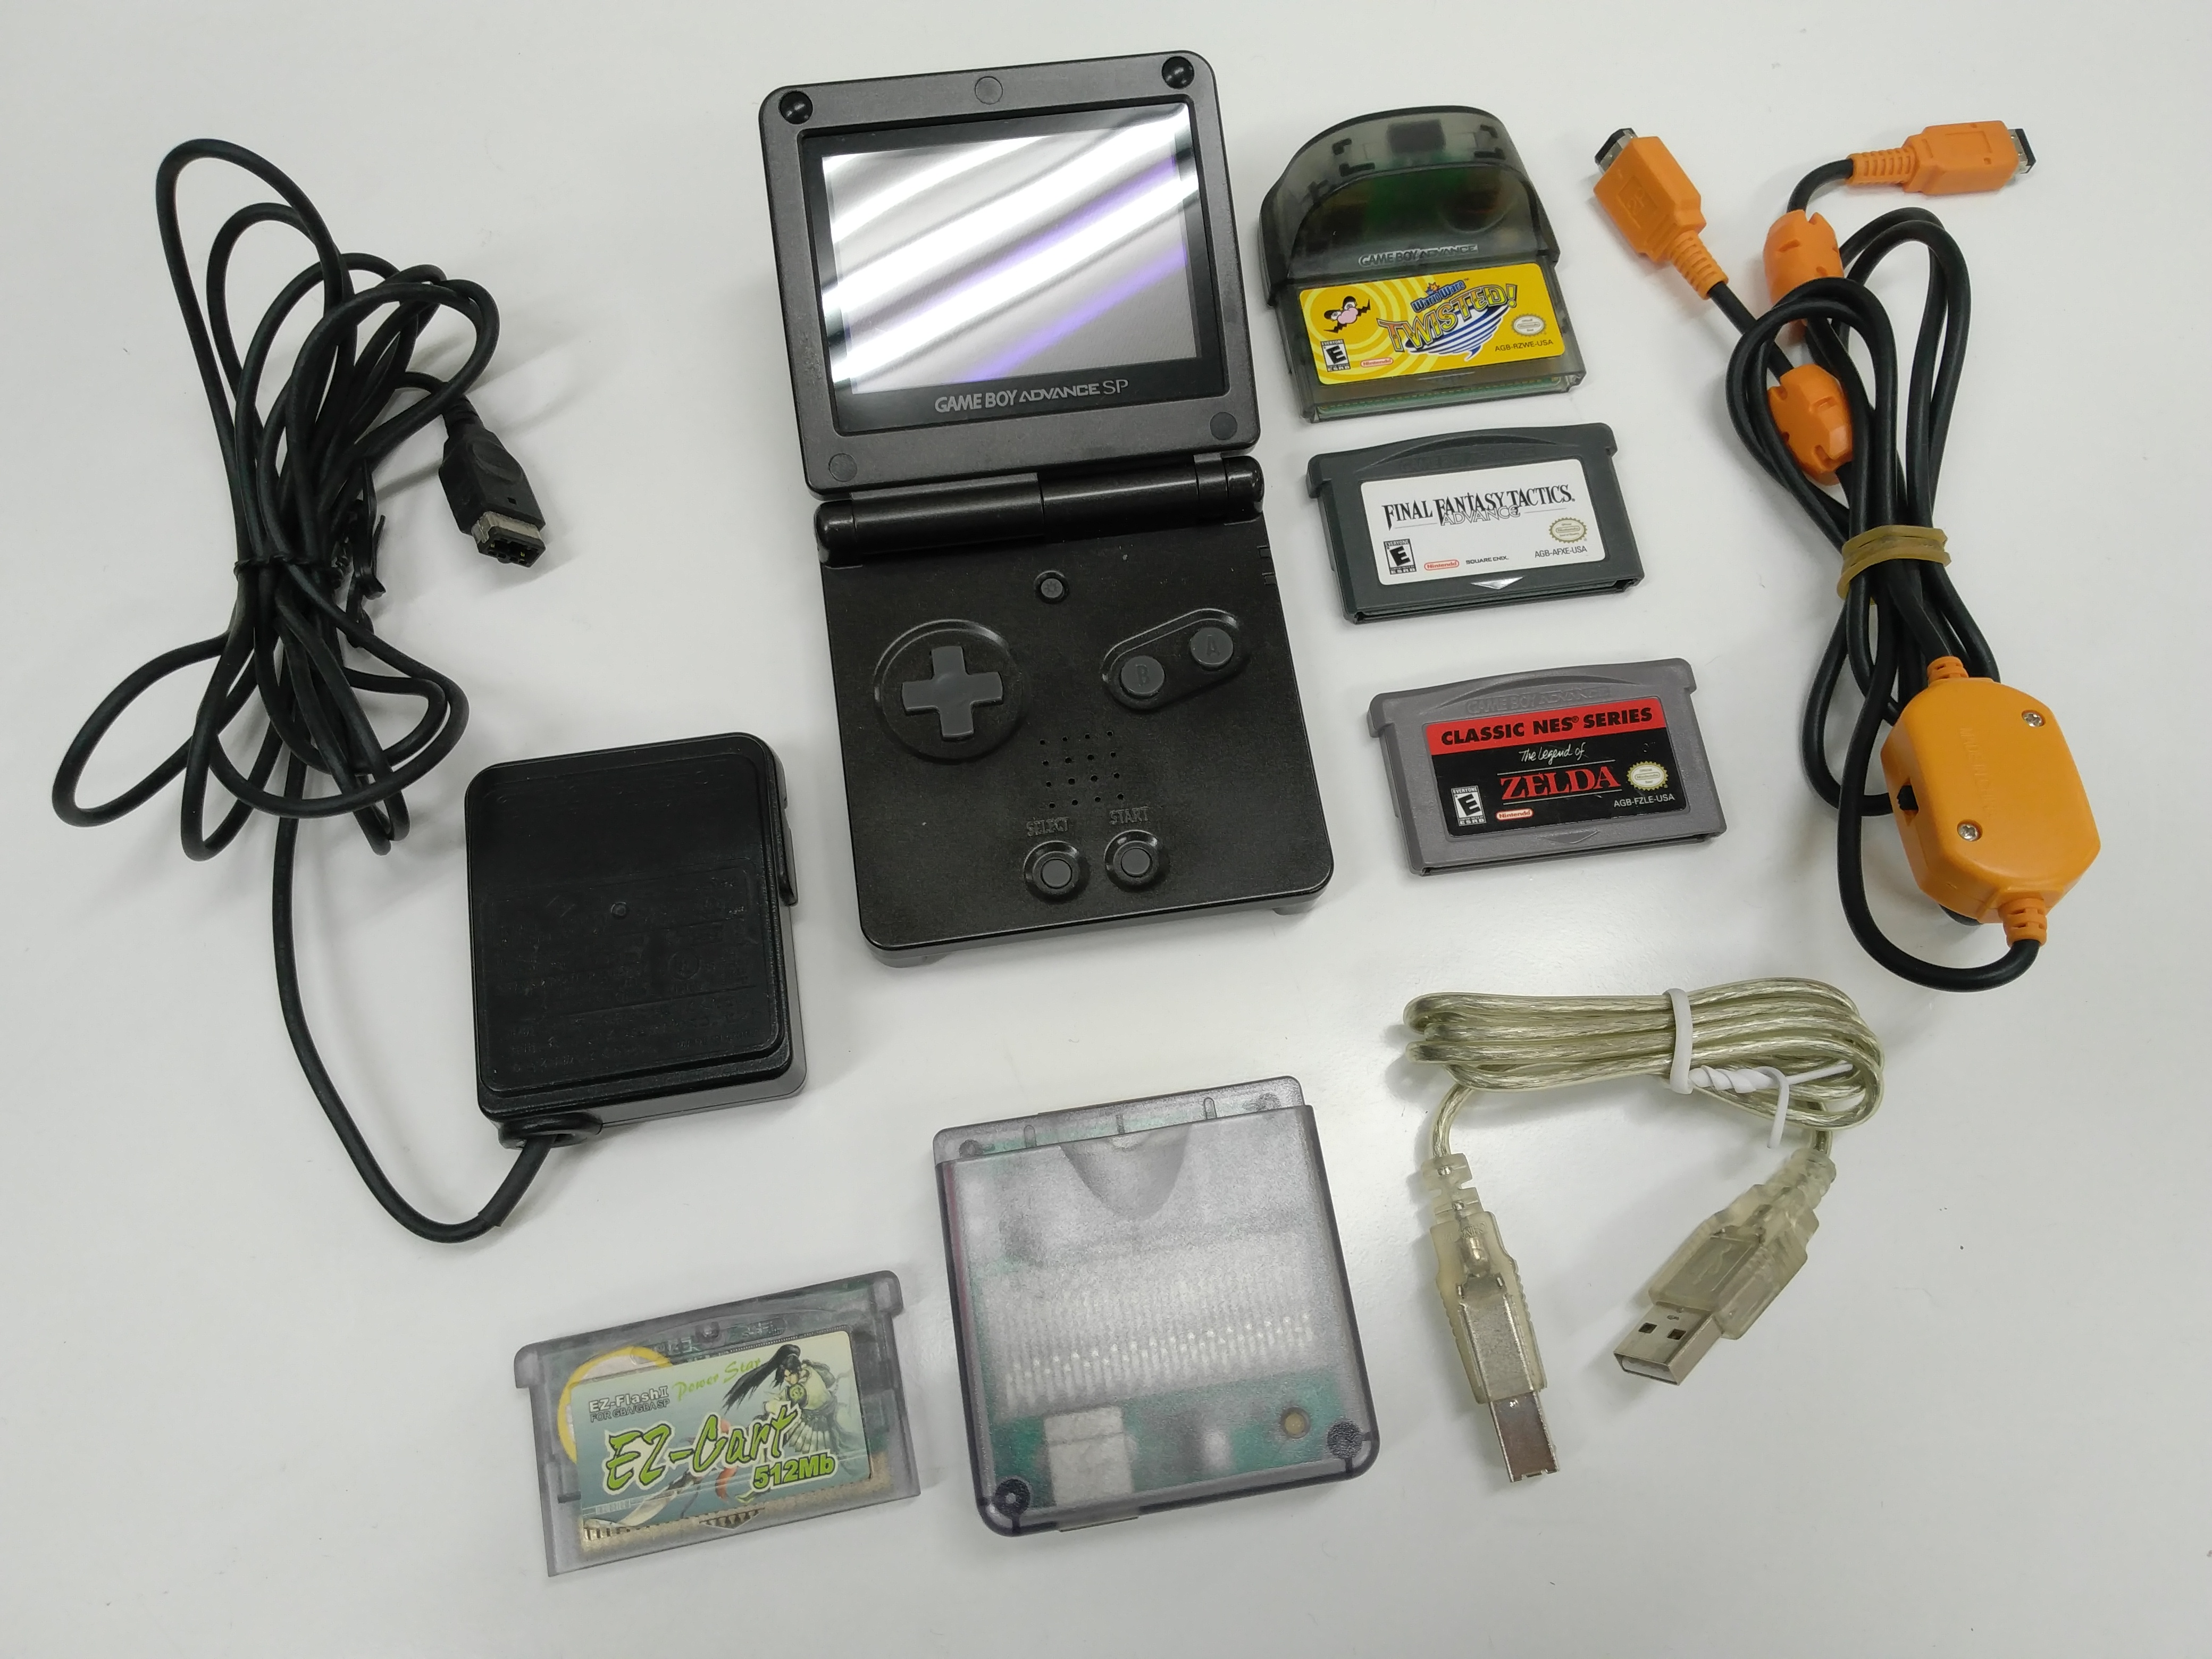 Nintendo Game Boy Advance SP Bundle